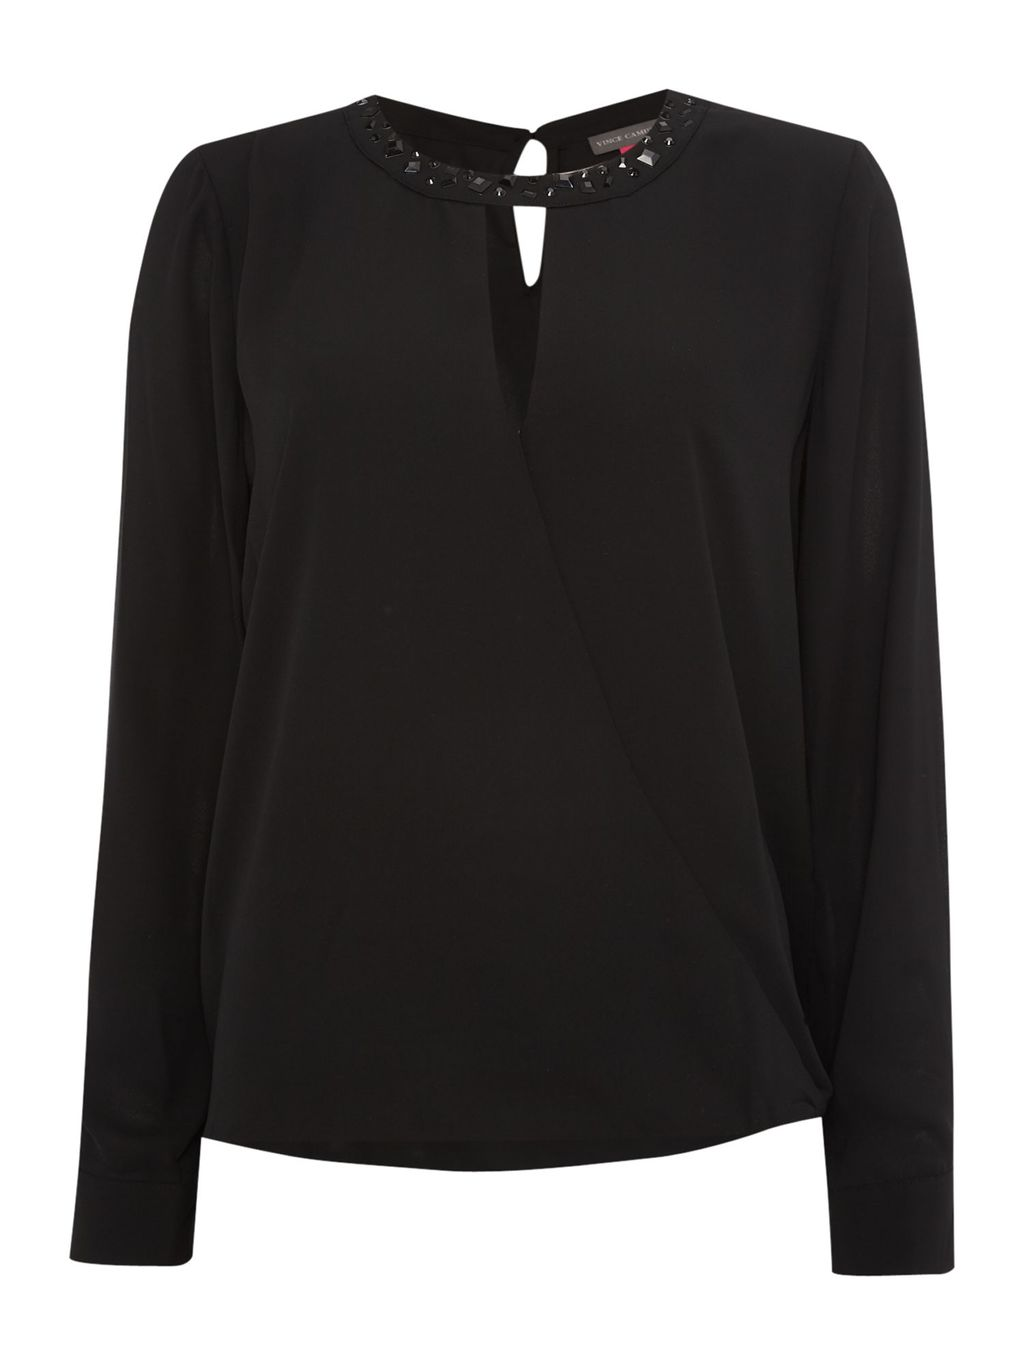 Wrap Front Embellished Neck Top, Black - neckline: v-neck; pattern: plain; predominant colour: black; occasions: evening, occasion; length: standard; style: top; fibres: polyester/polyamide - 100%; fit: body skimming; back detail: keyhole/peephole detail at back; sleeve length: long sleeve; sleeve style: standard; texture group: crepes; pattern type: fabric; pattern size: standard; season: a/w 2015; wardrobe: event